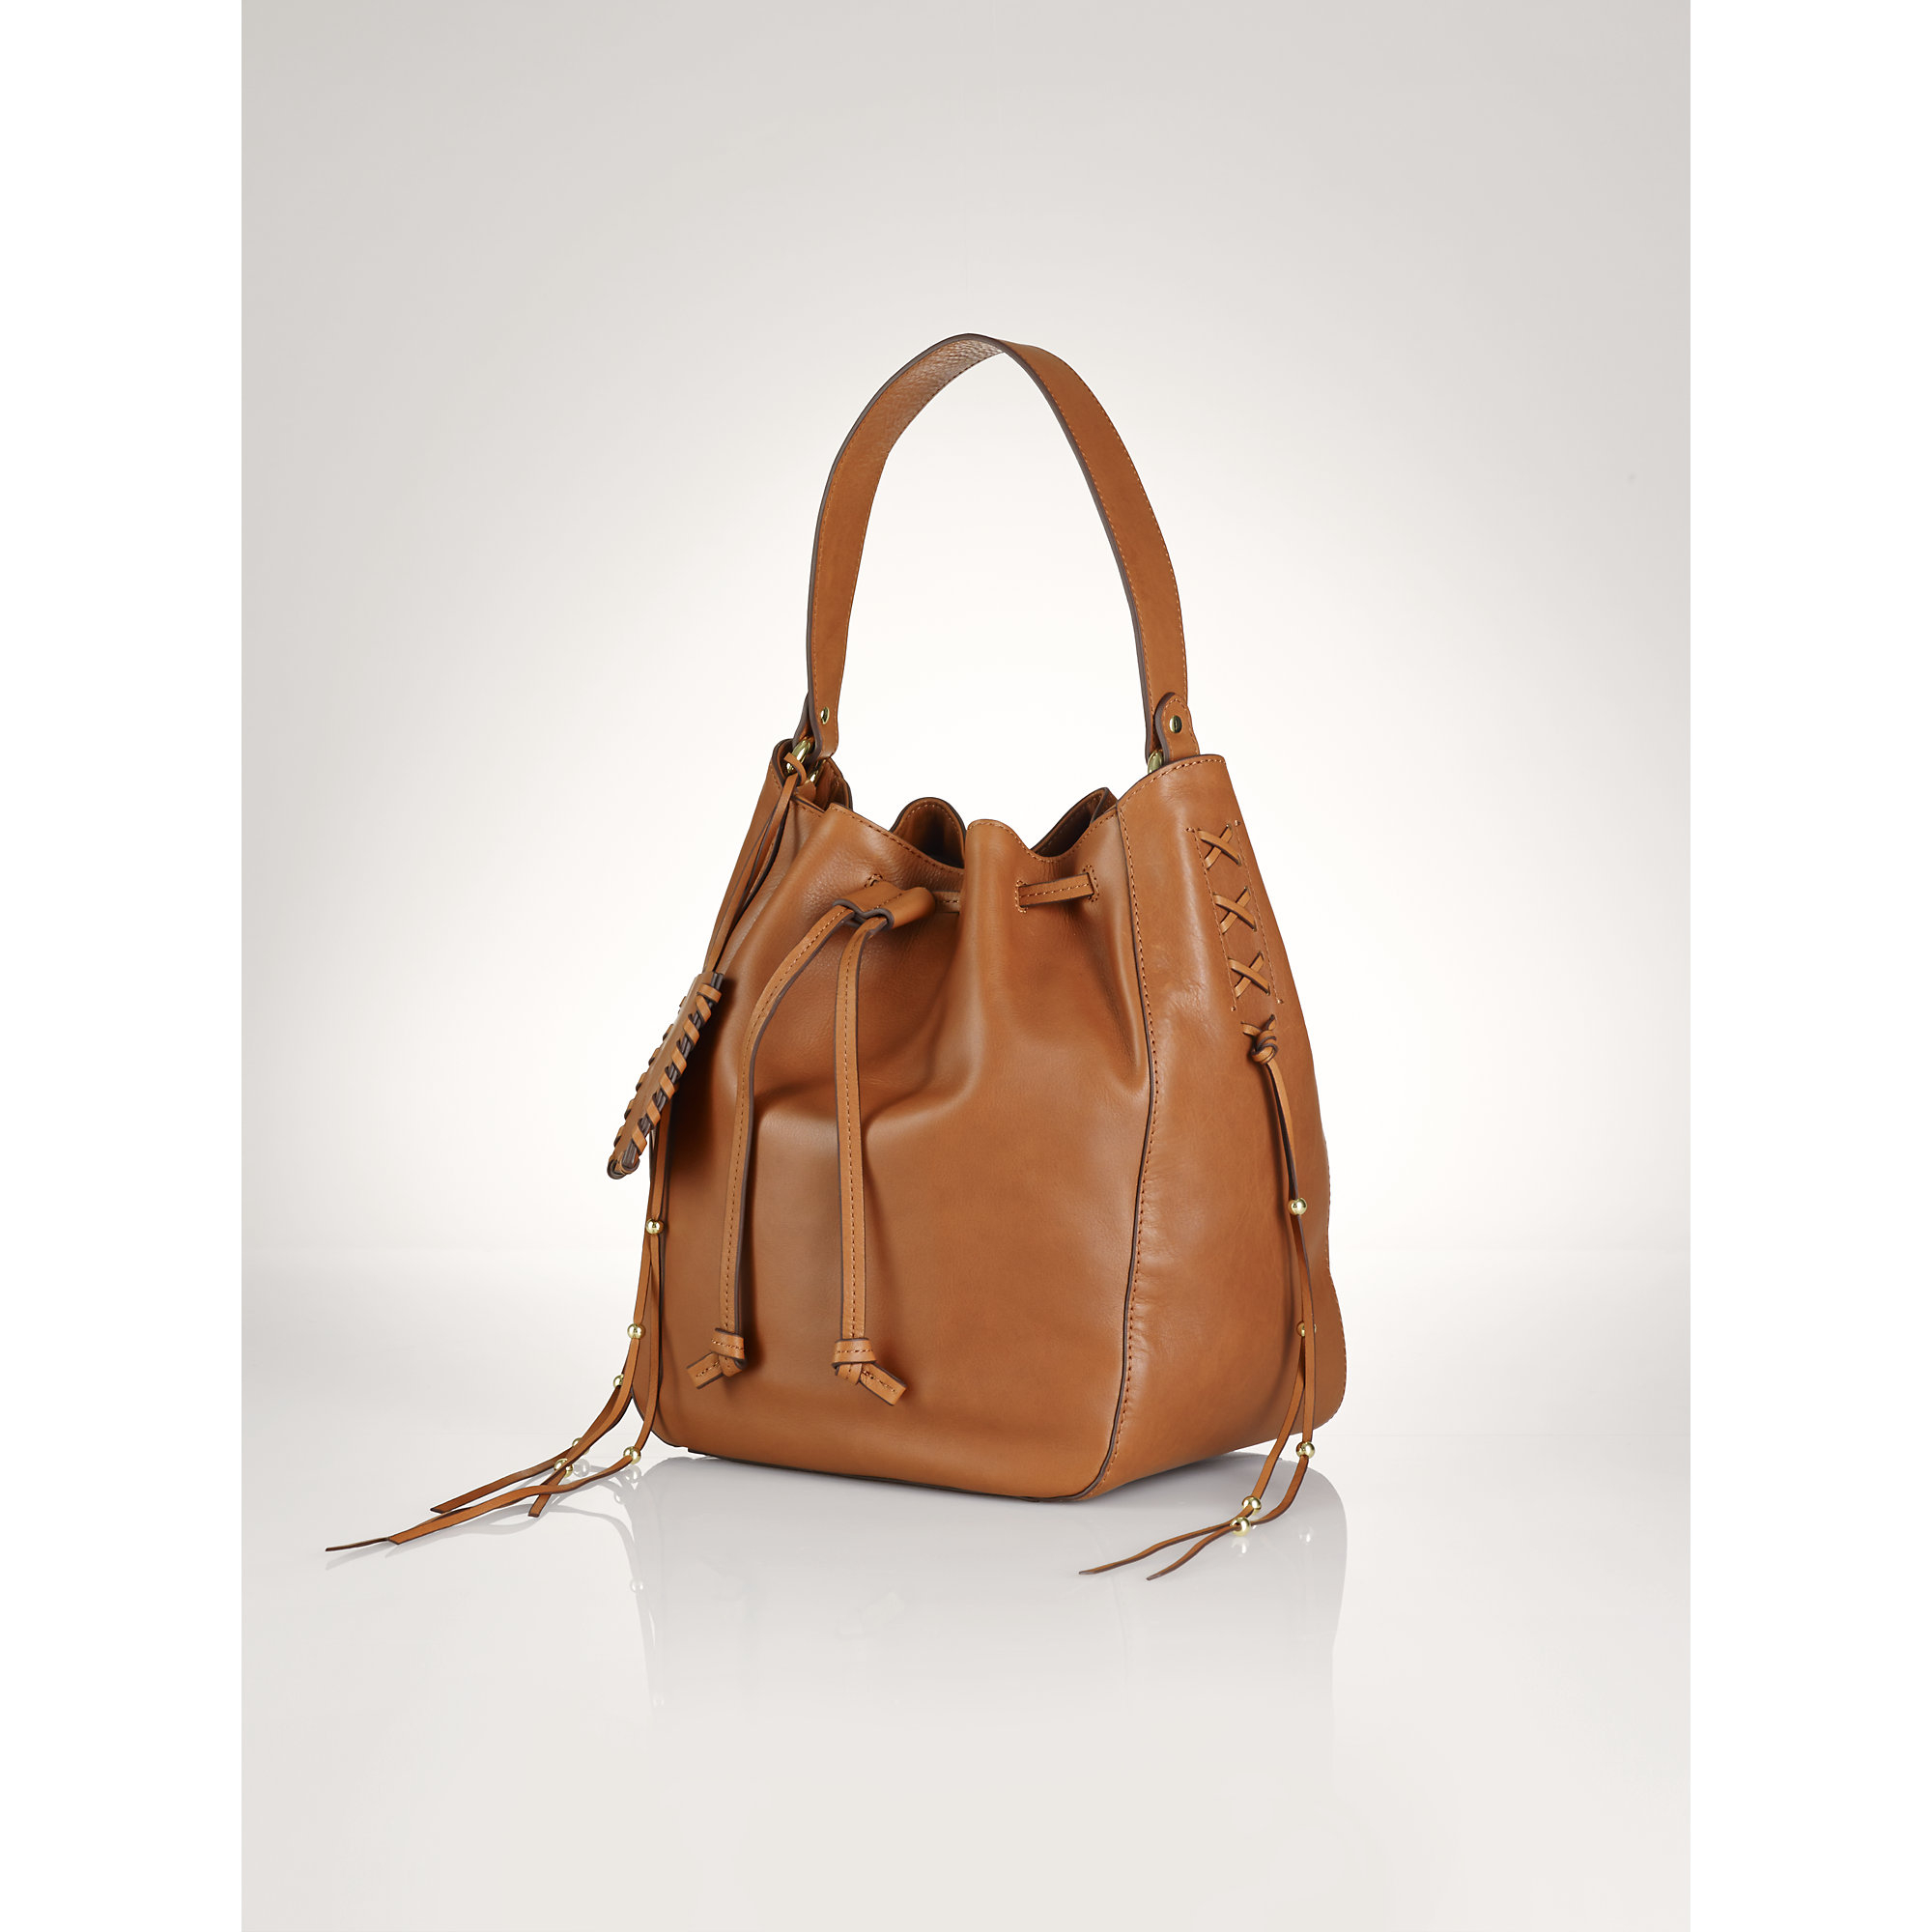 Polo ralph lauren Laced Leather Drawstring Bag in Brown   Lyst